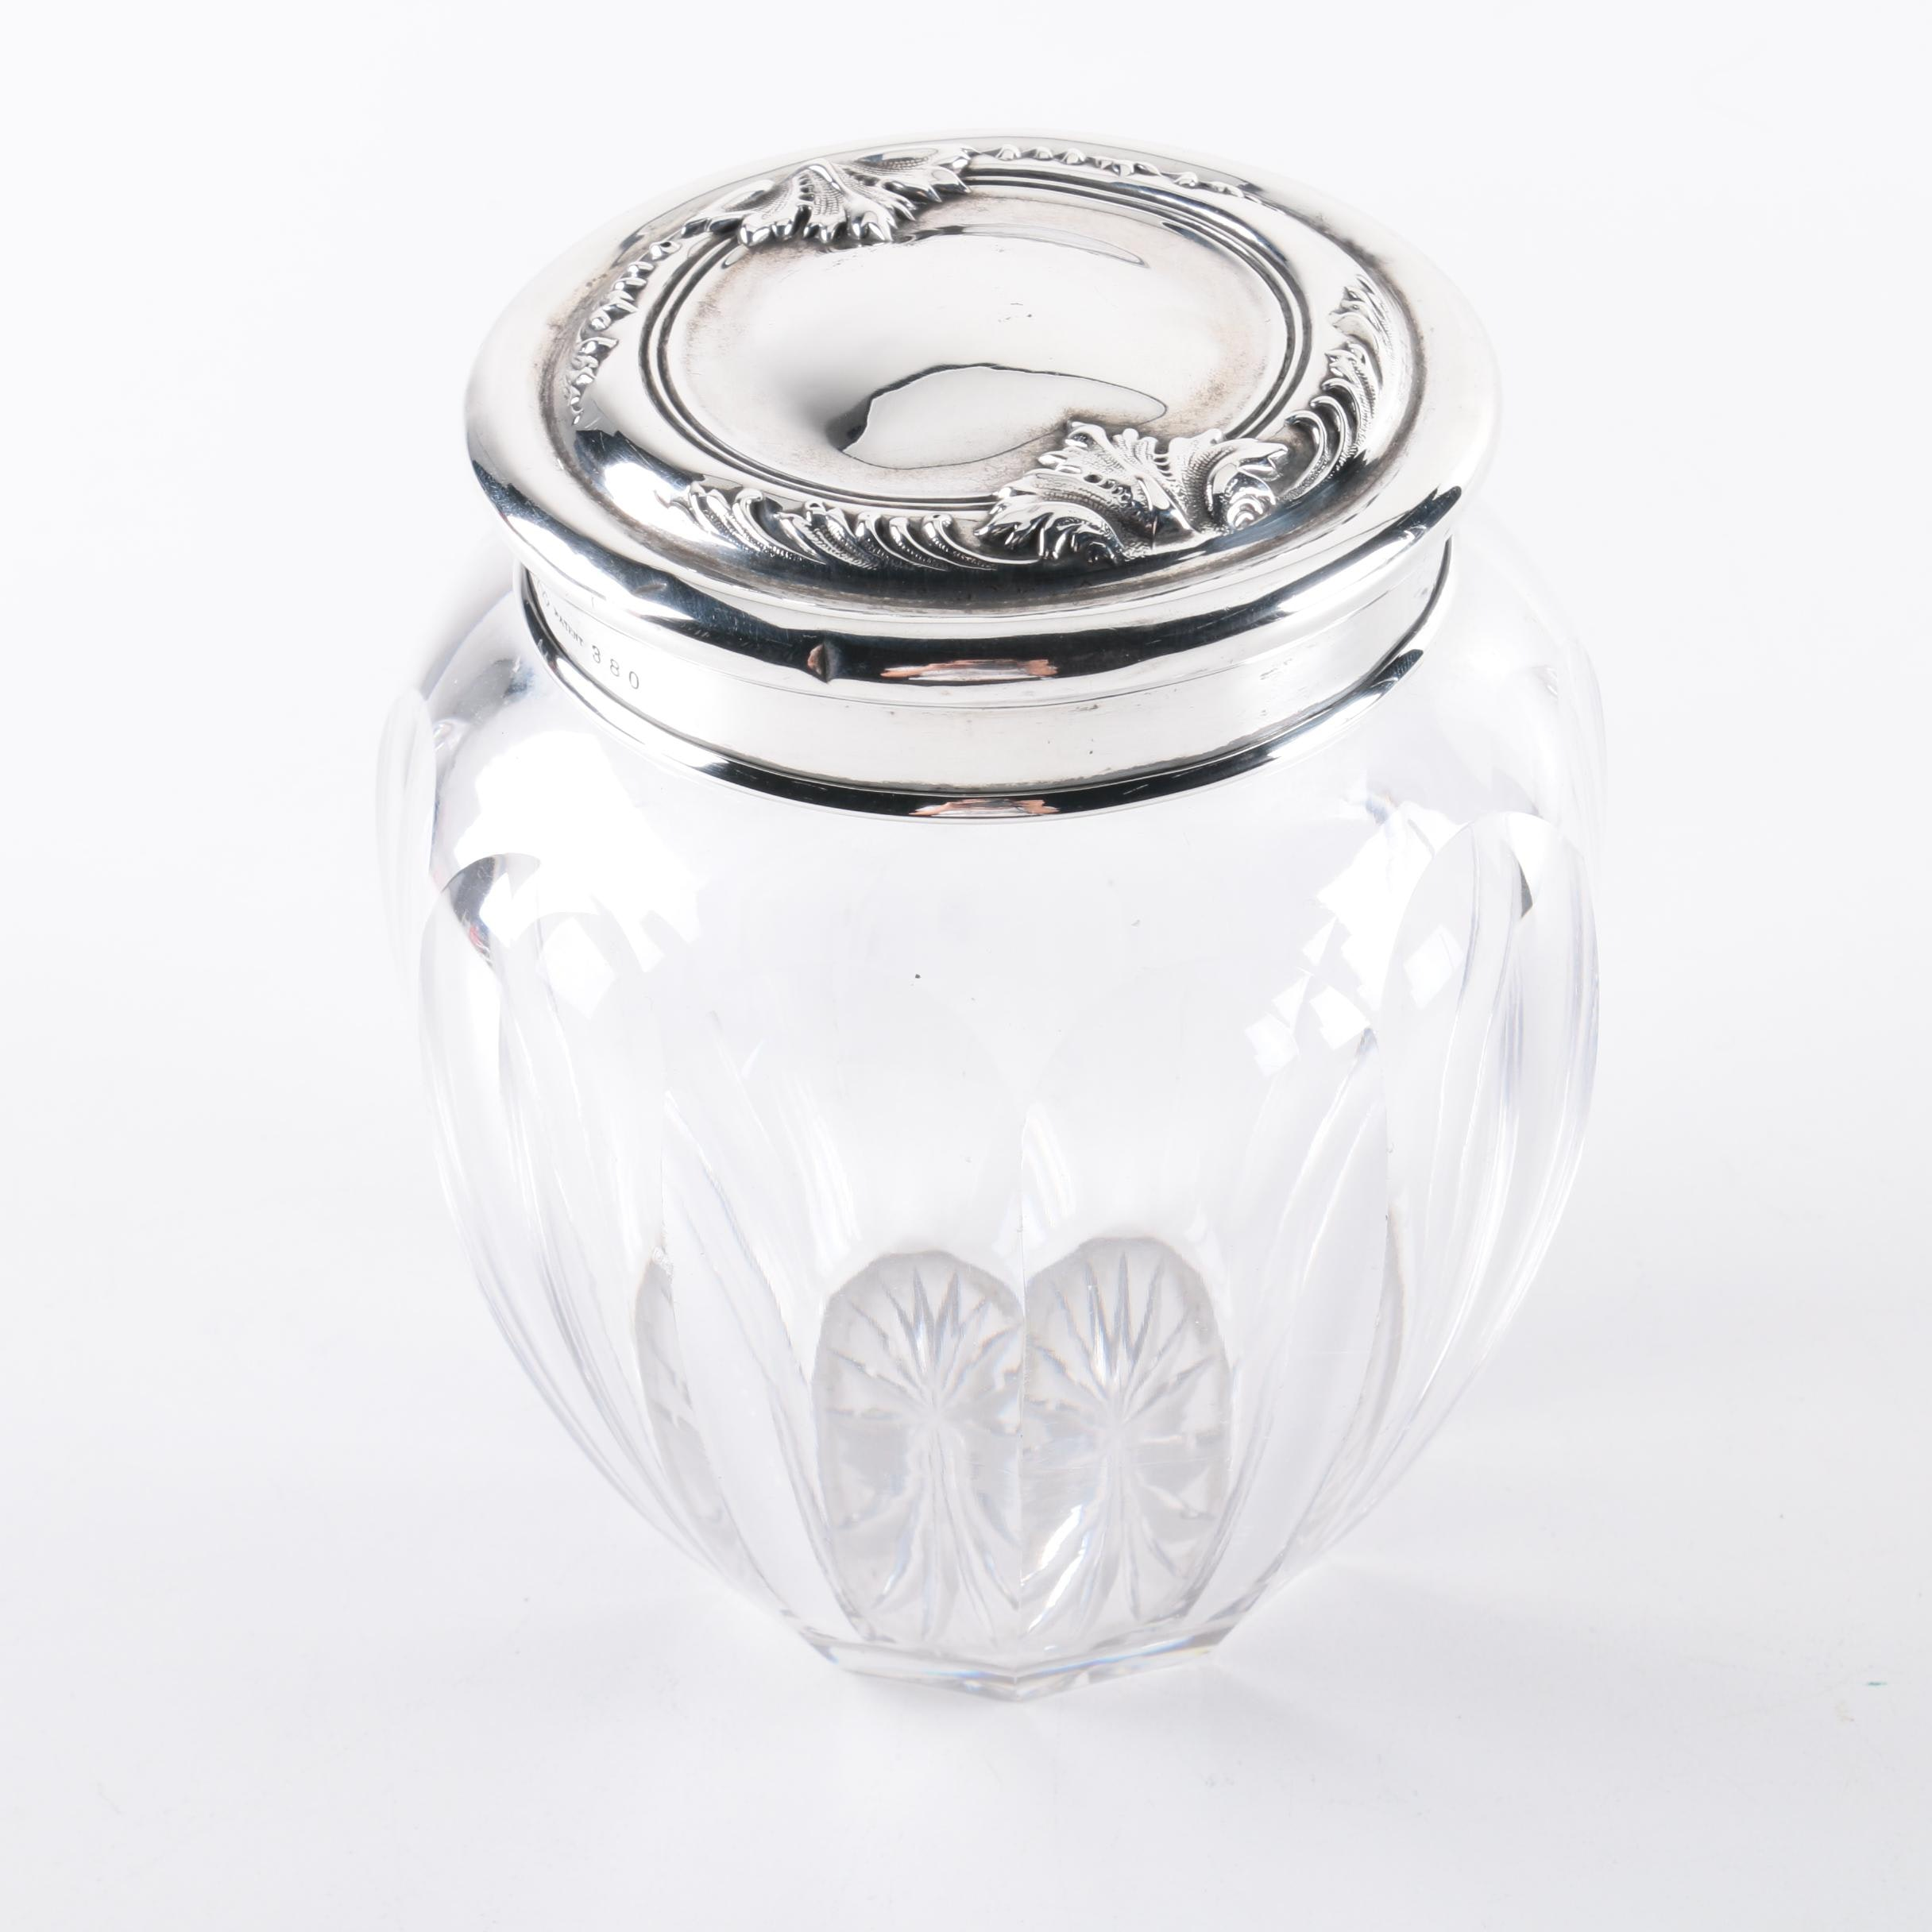 Dominick & Haff Sterling Silver and Glass Jar